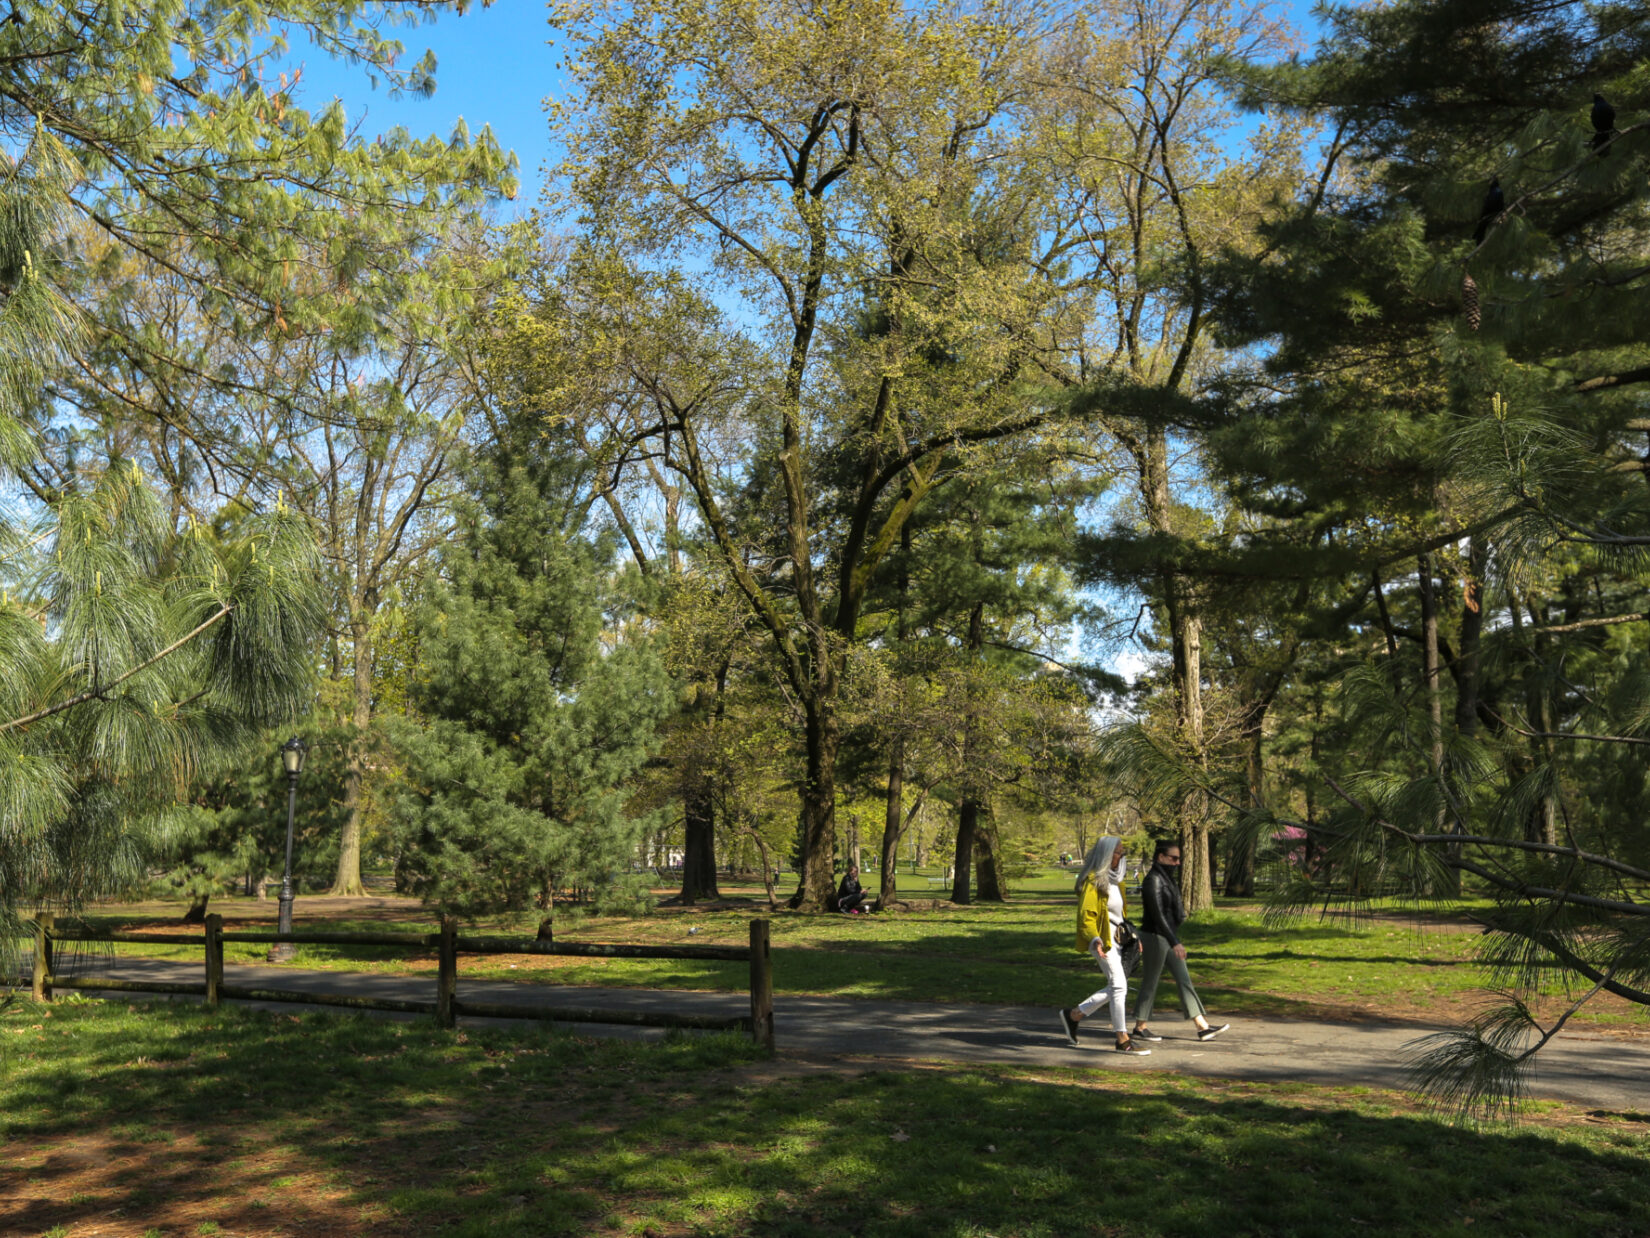 Two parkgoers stroll through the Arthur Rose Pinetum on a brisk, sunny day